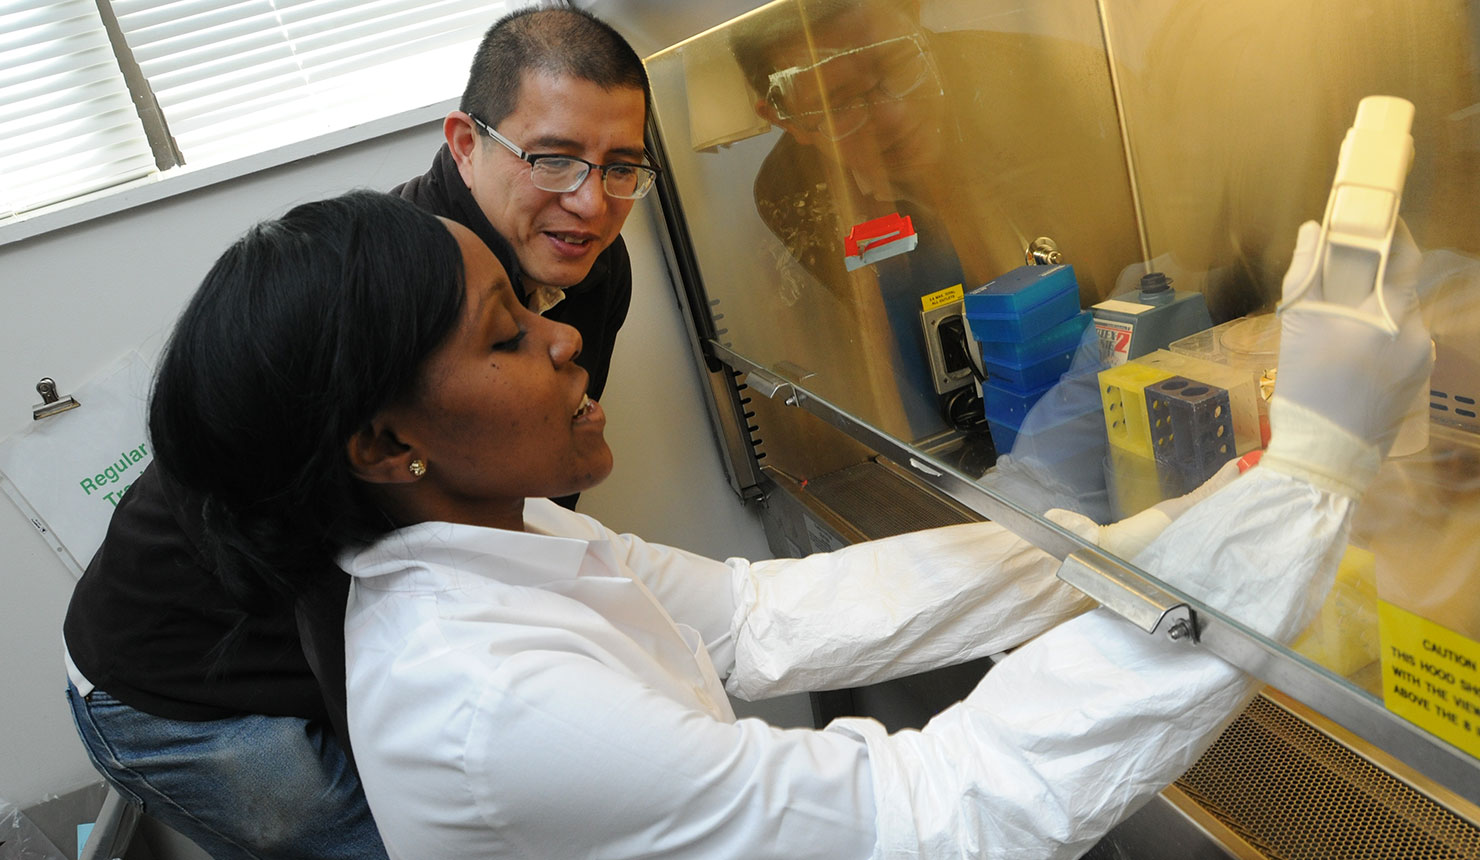 MD-PhD student Tamutenda Chidawanyika (foreground) conducts research in the laboratory of biochemistry and cell biology professor Surachai Supattapone, MD, PhD, DPhil.